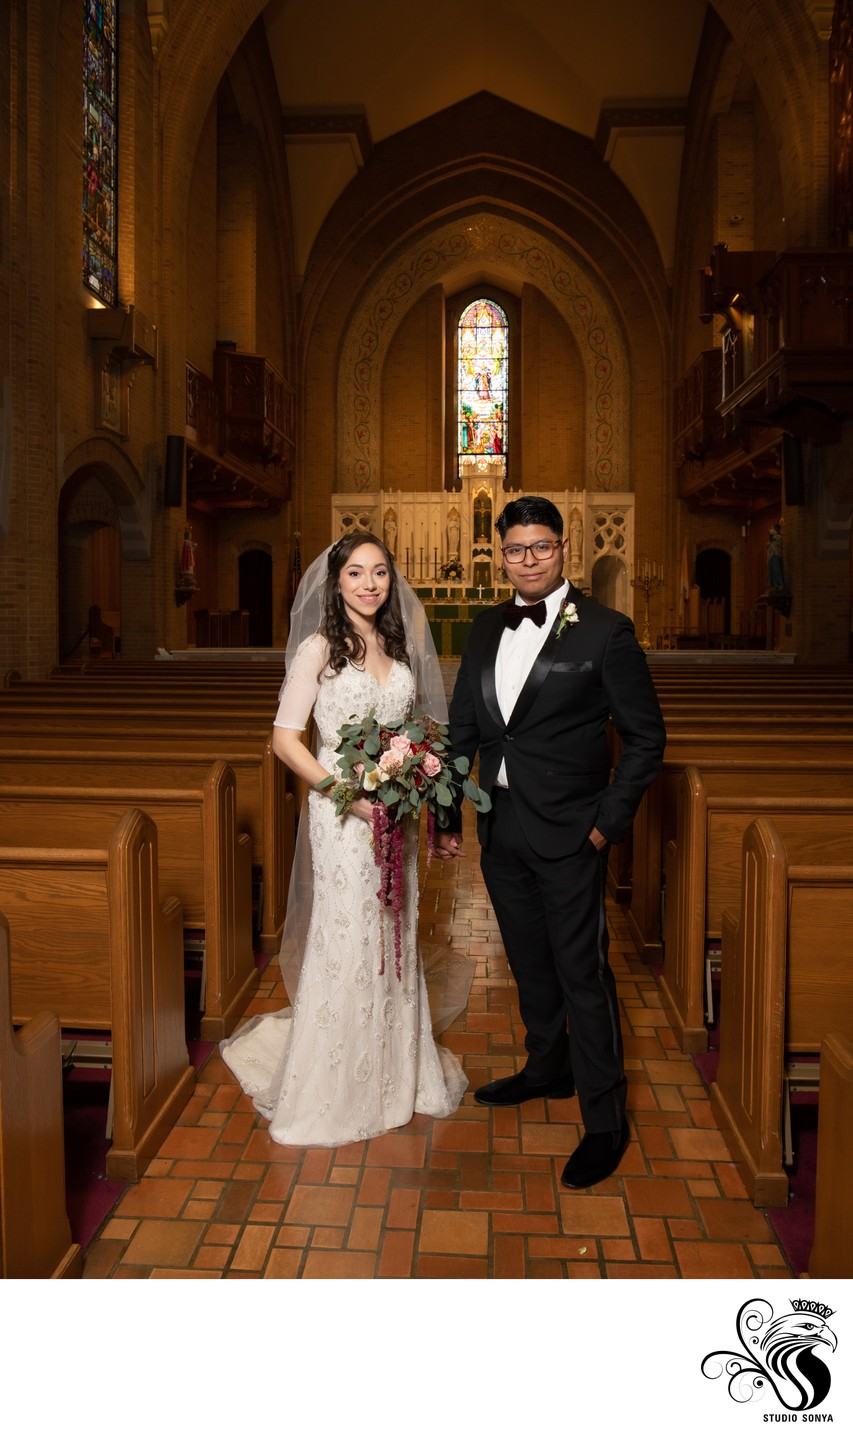 Bride and Groom at Our Lady of Grace Catholic Church in Greensboro